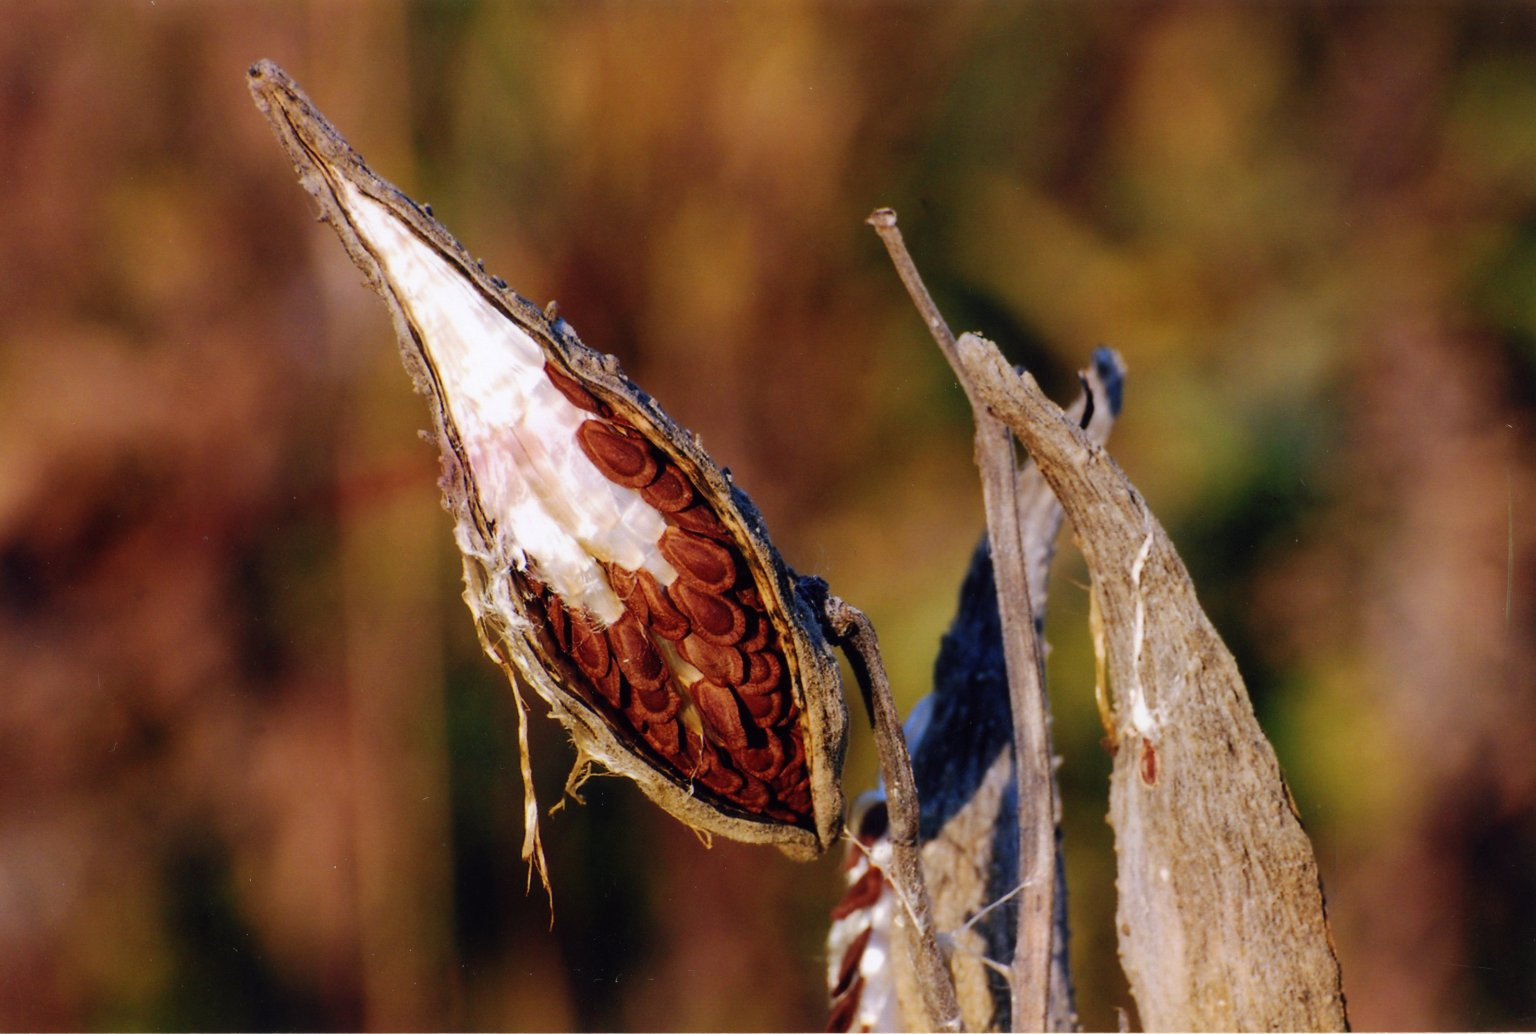 Close up of seed pod with seeds